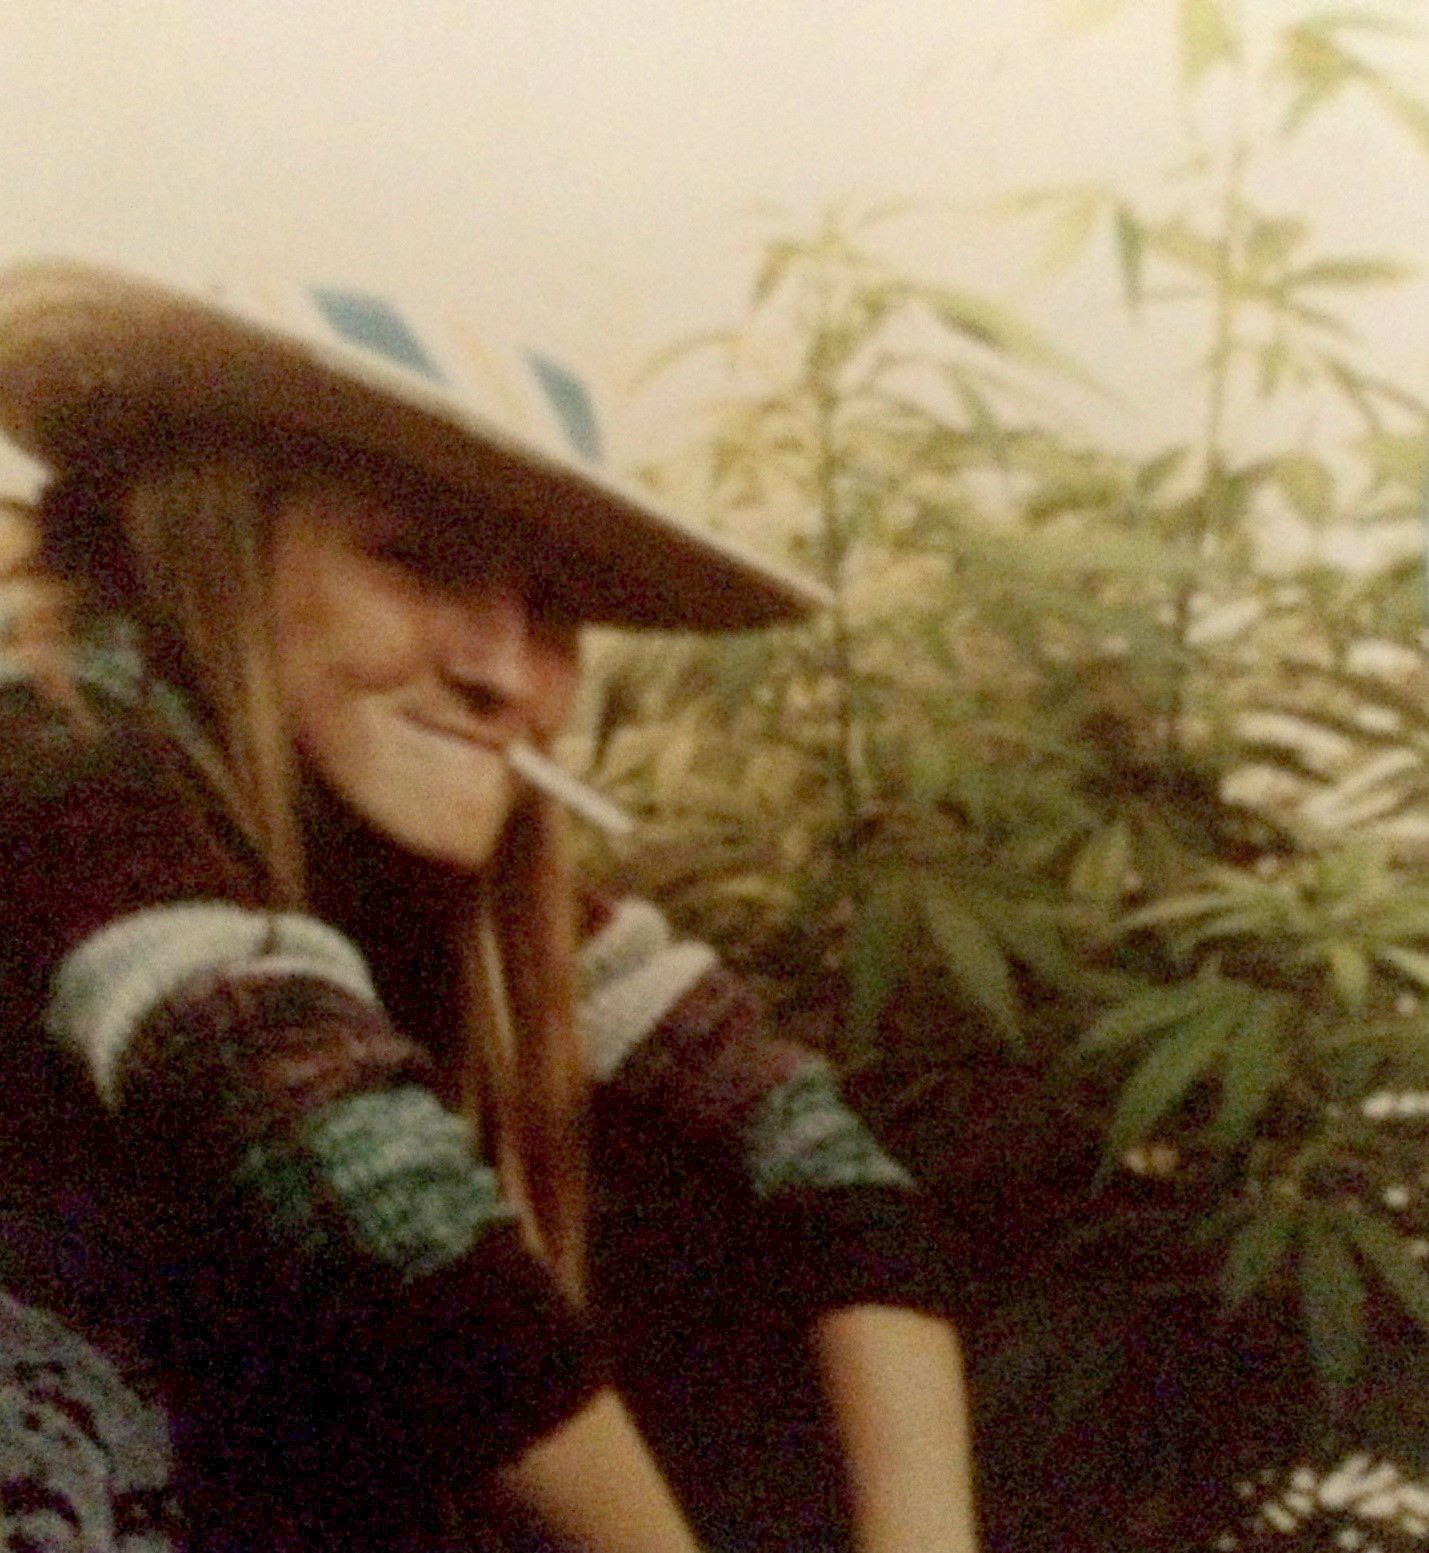 Letts at 16, yucking it up by some plants she grew in her mom's rose garden